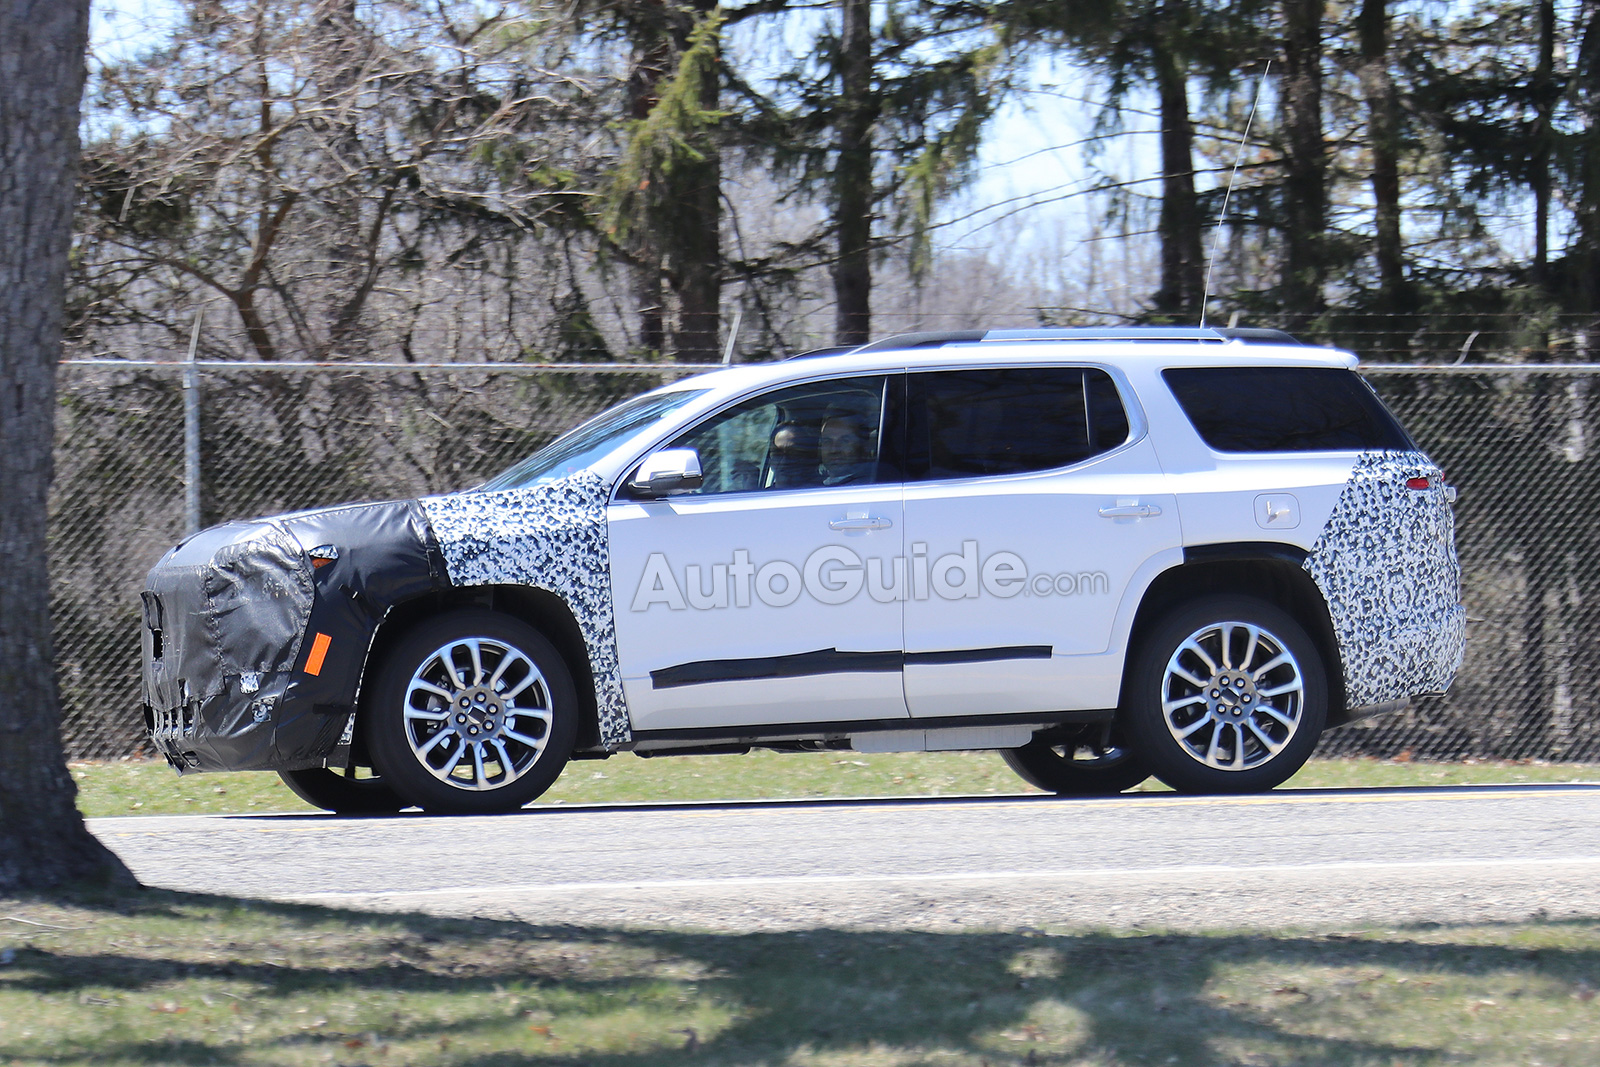 gmc reports hero cars cr suv terrain consumer driving models misfire suvs review a luxury